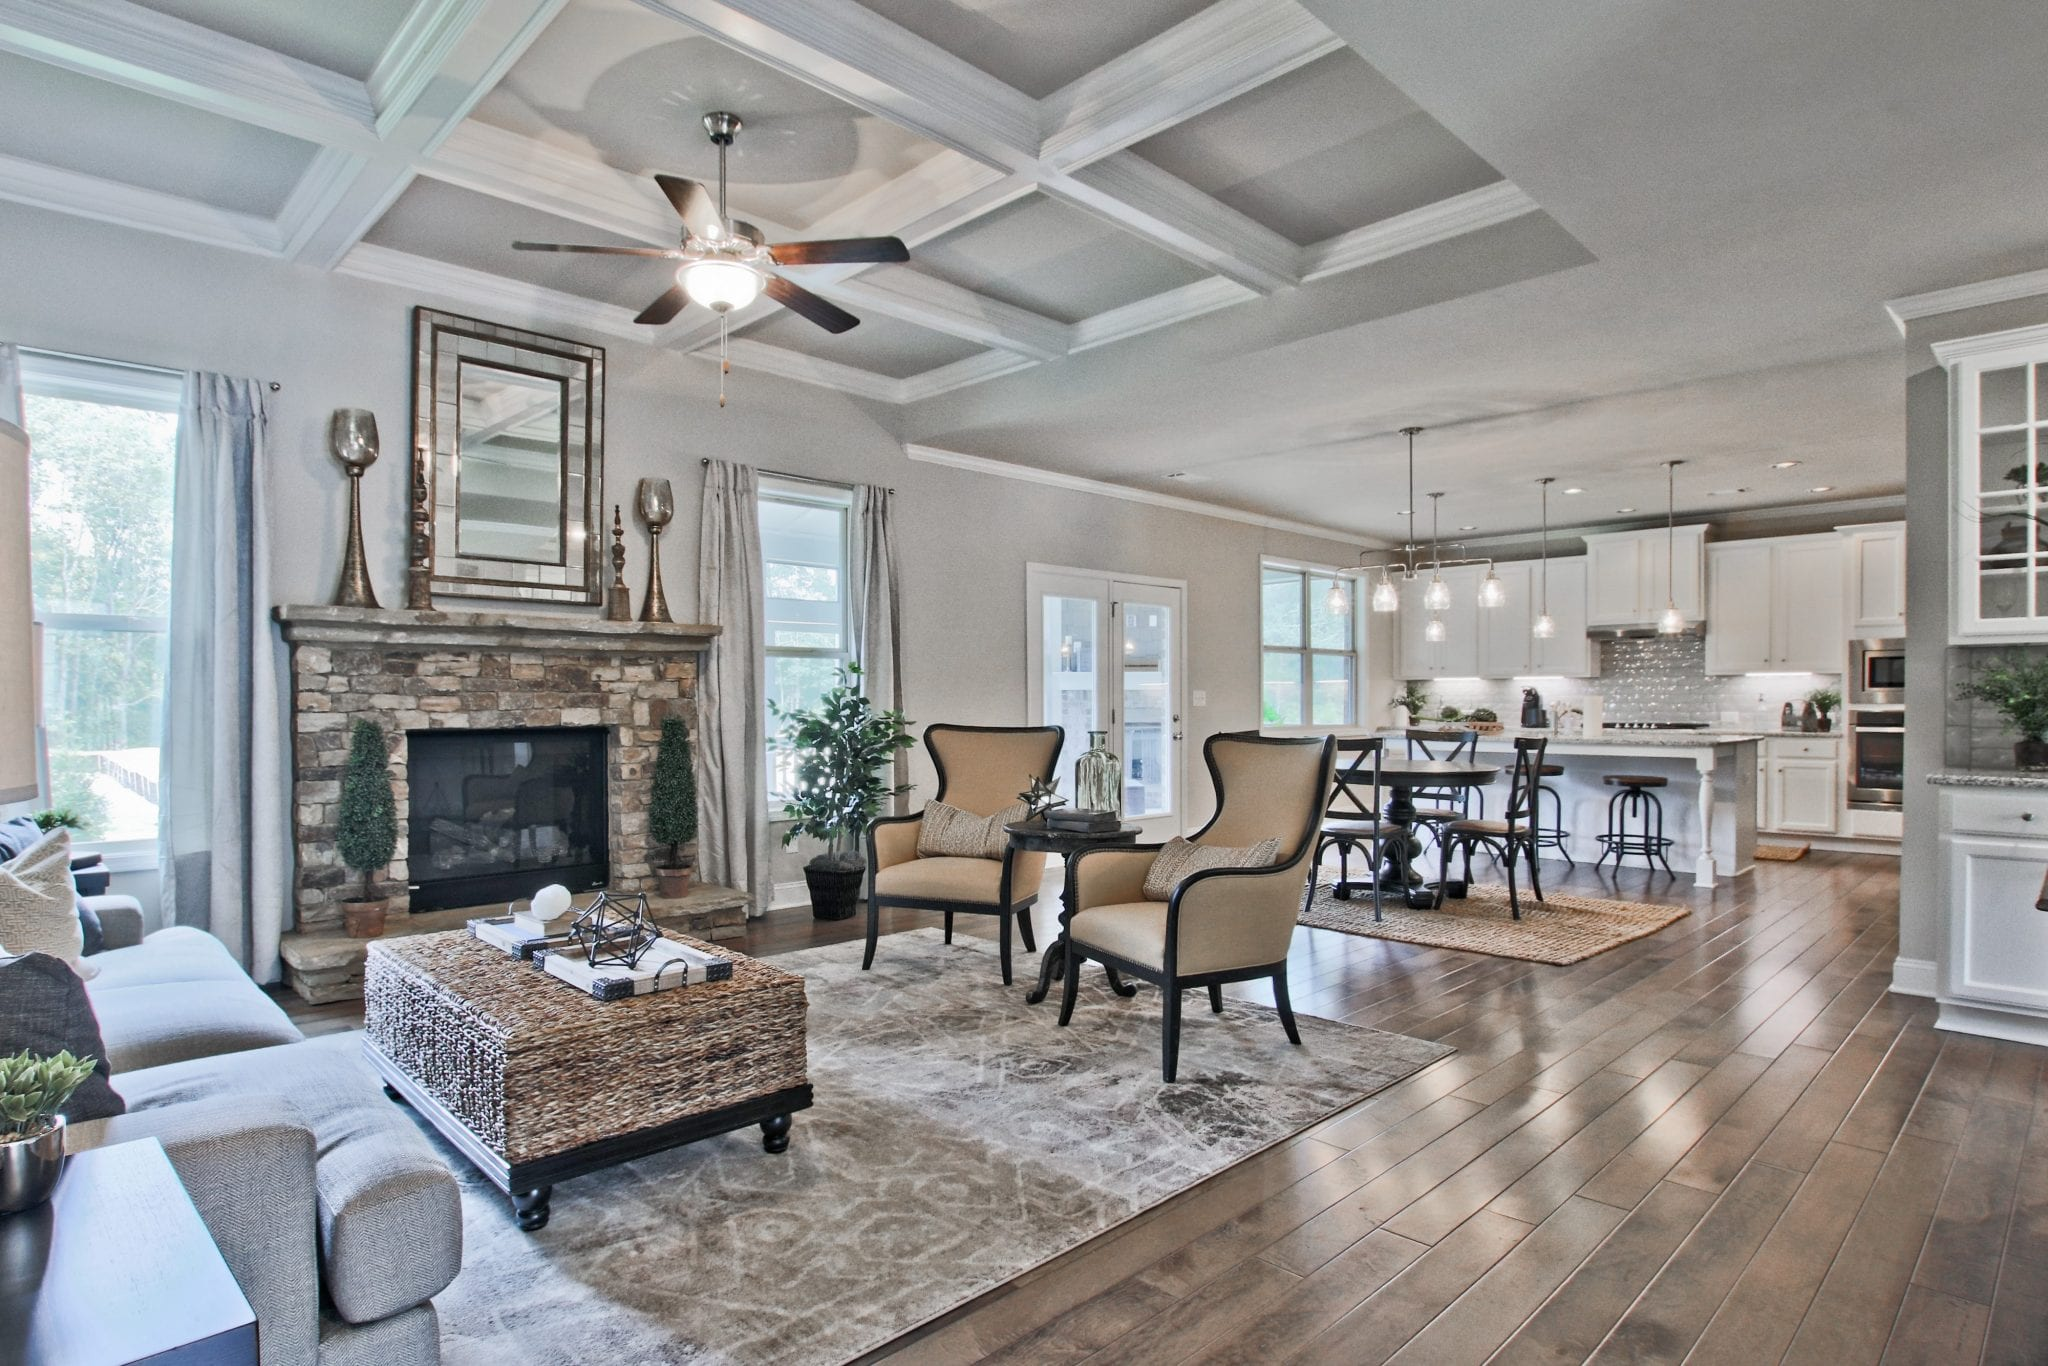 Great Rooms 2 Story High Or With A Loft Overhead 03 19 2019